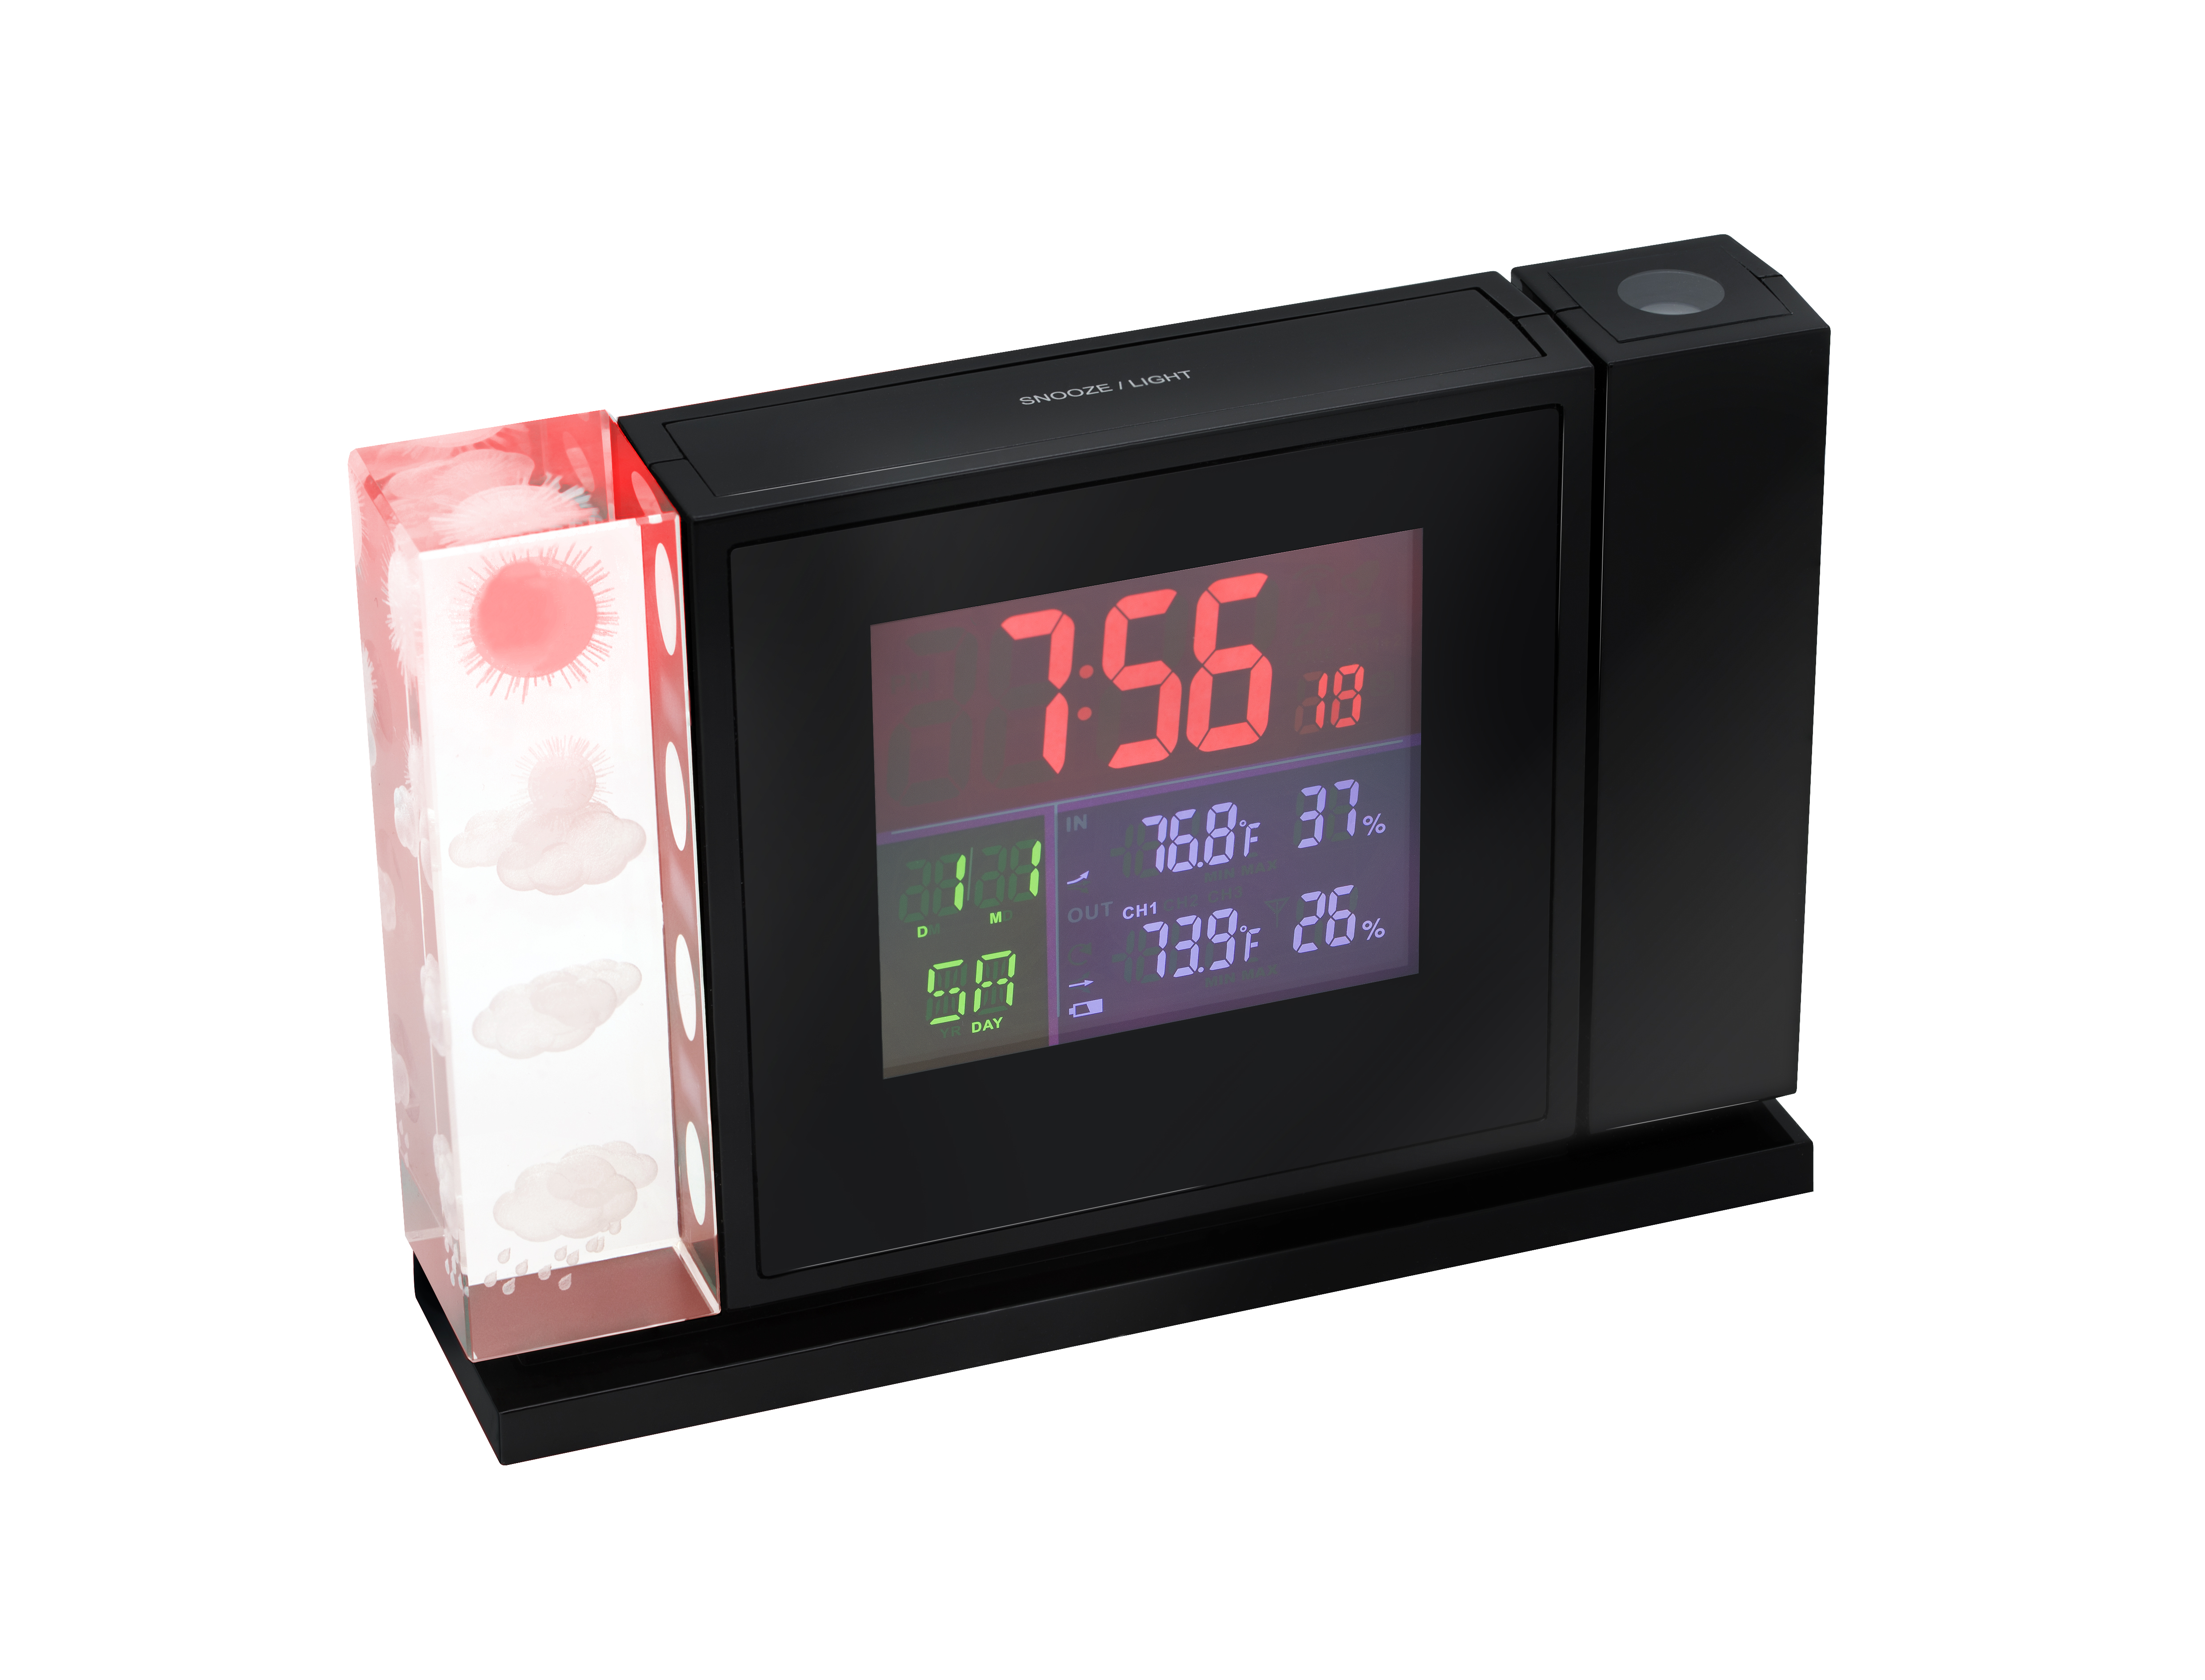 Bresser mytime crystal p colour projection alarm clock and weather bresser mytime crystal p colour projection alarm clock and weather stations amipublicfo Images